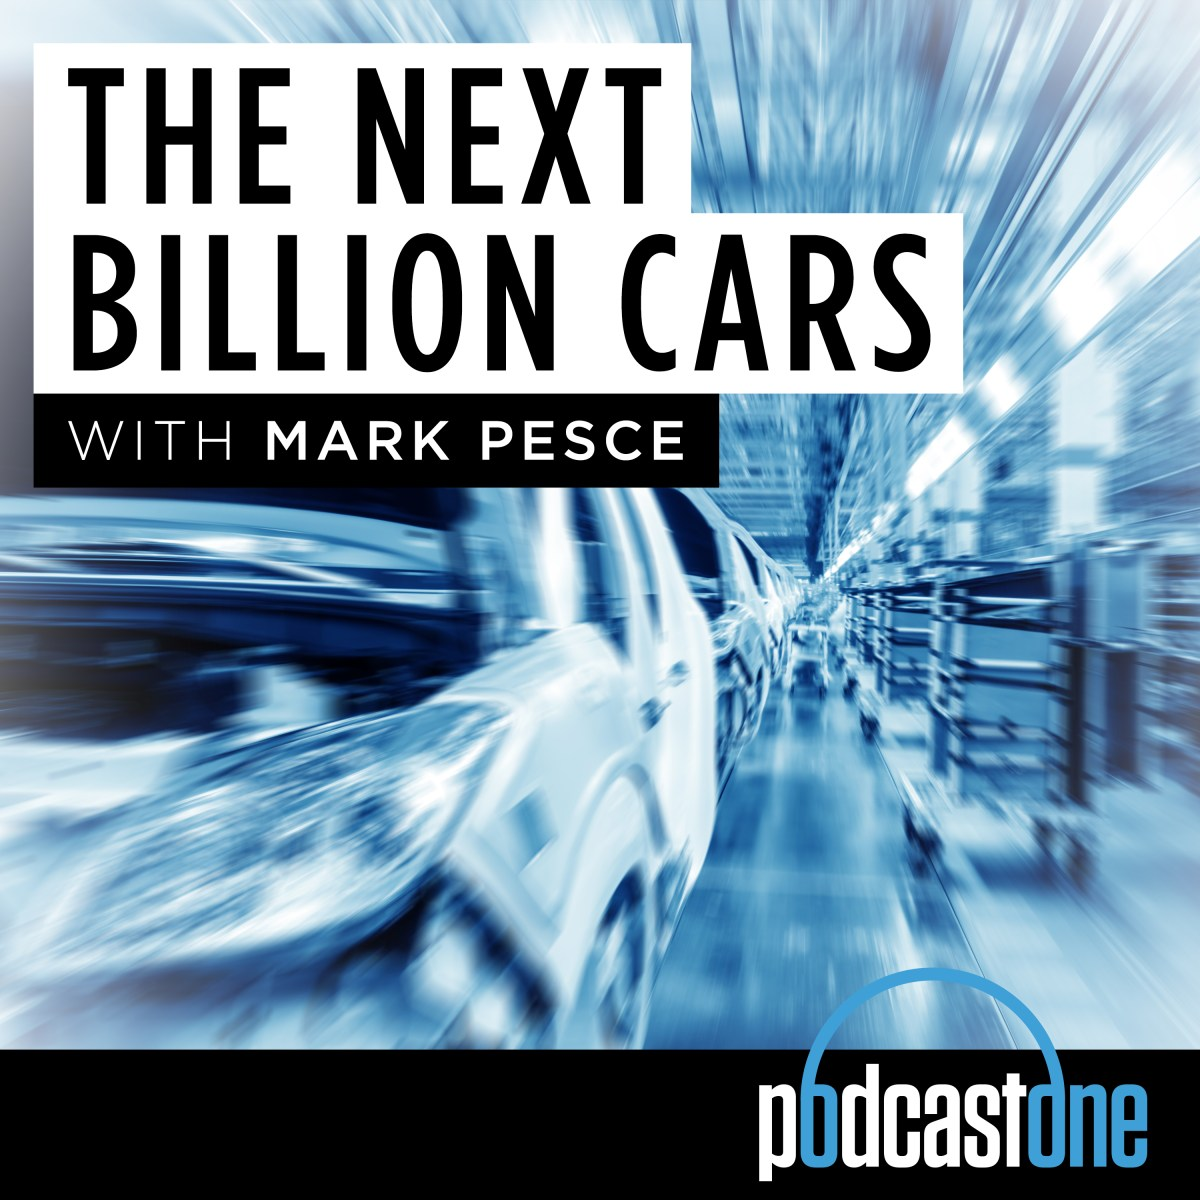 THE NEXT BILLION CARS launches Wednesday!